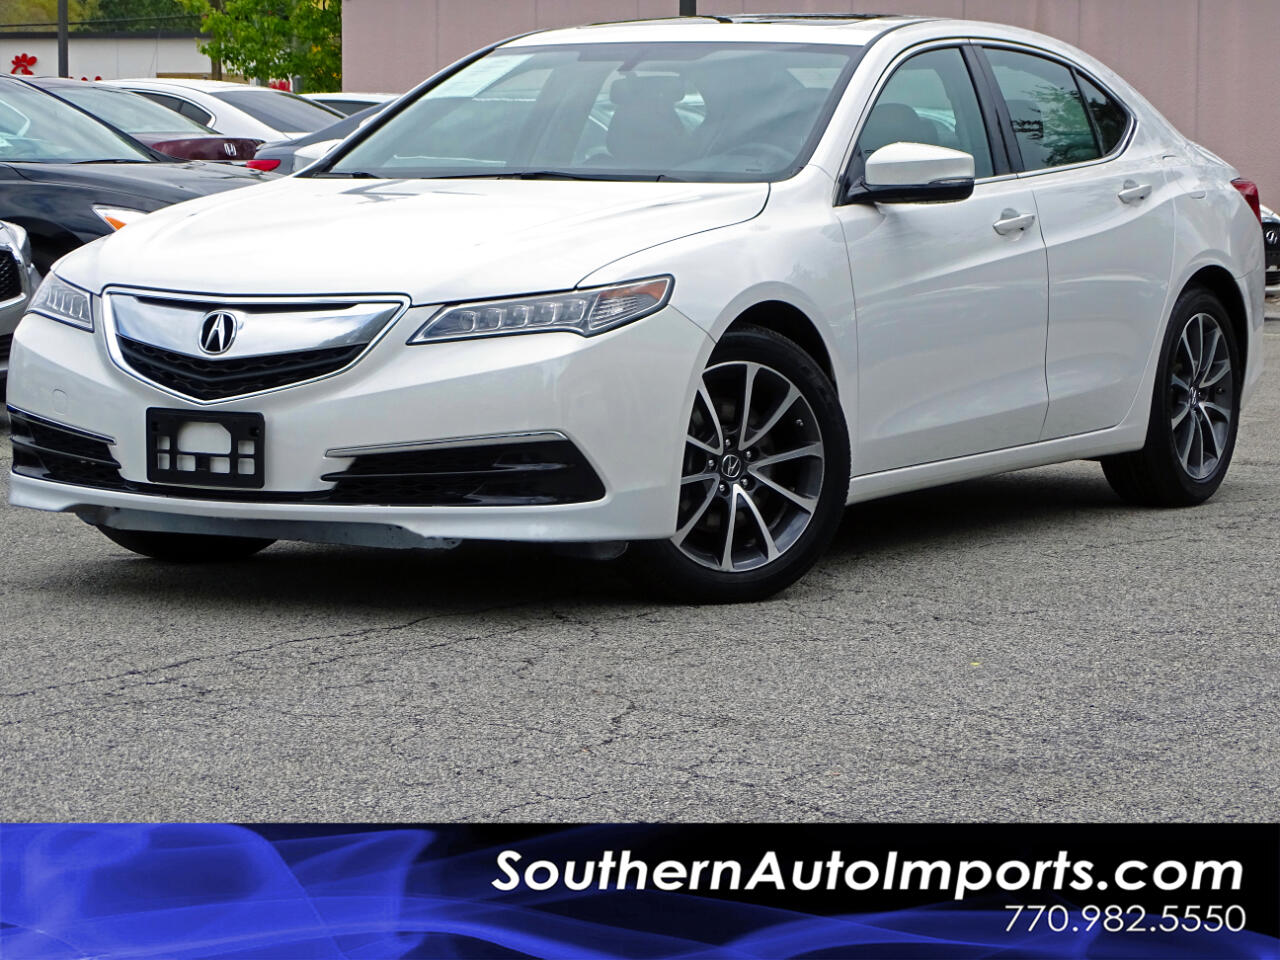 2016 Acura TLX Sdn w/Back up Camera Heated Seats Sunroof